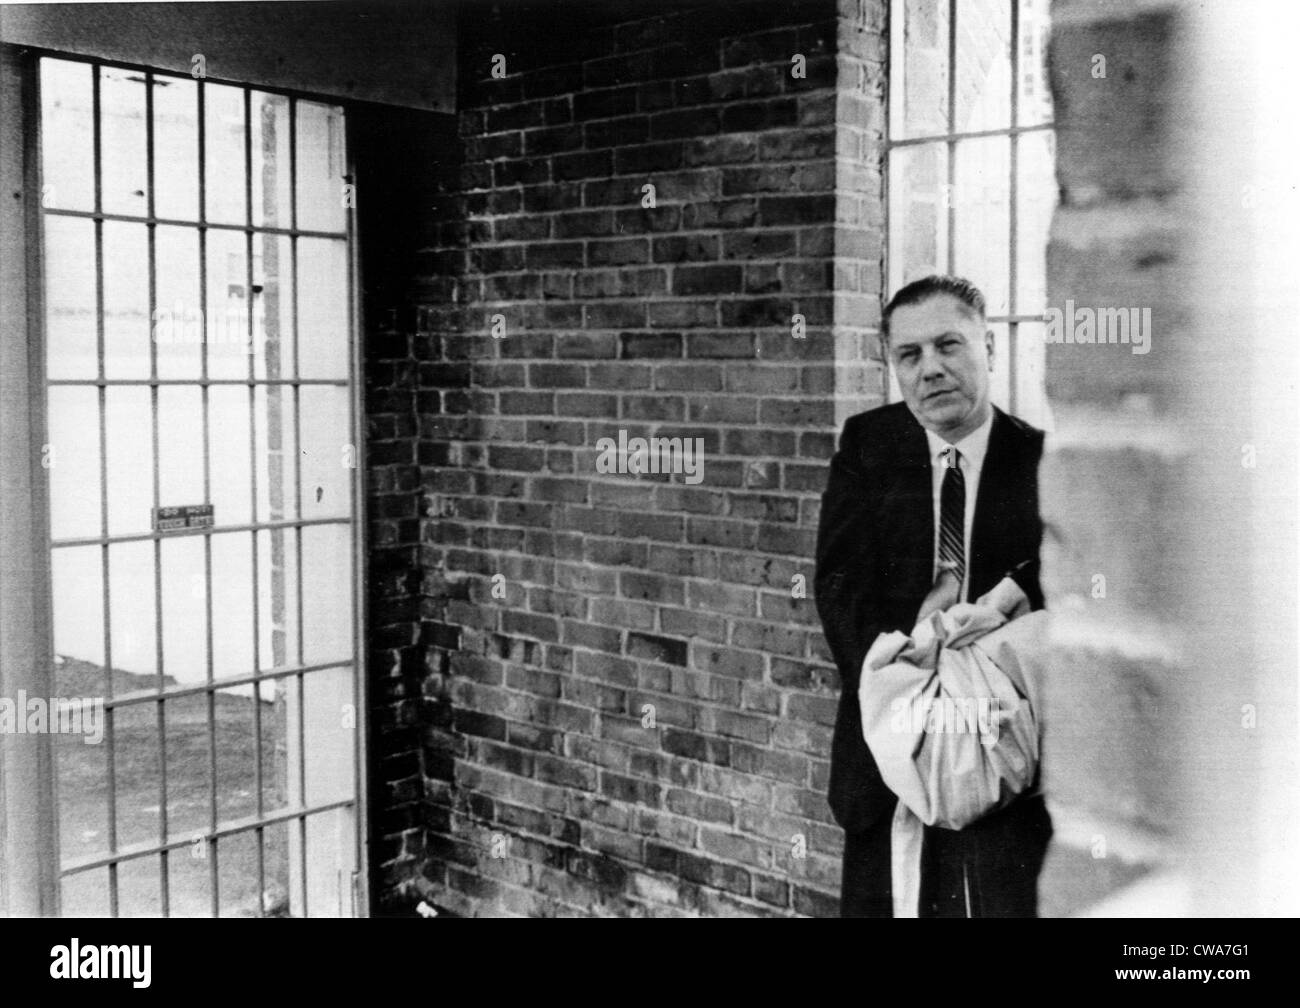 JAMES R.HOFFA- Teamsters Union chief entering Federal Prison to begin an 8-year sentence. Lewisburg, PA, 3/7/67. - Stock Image